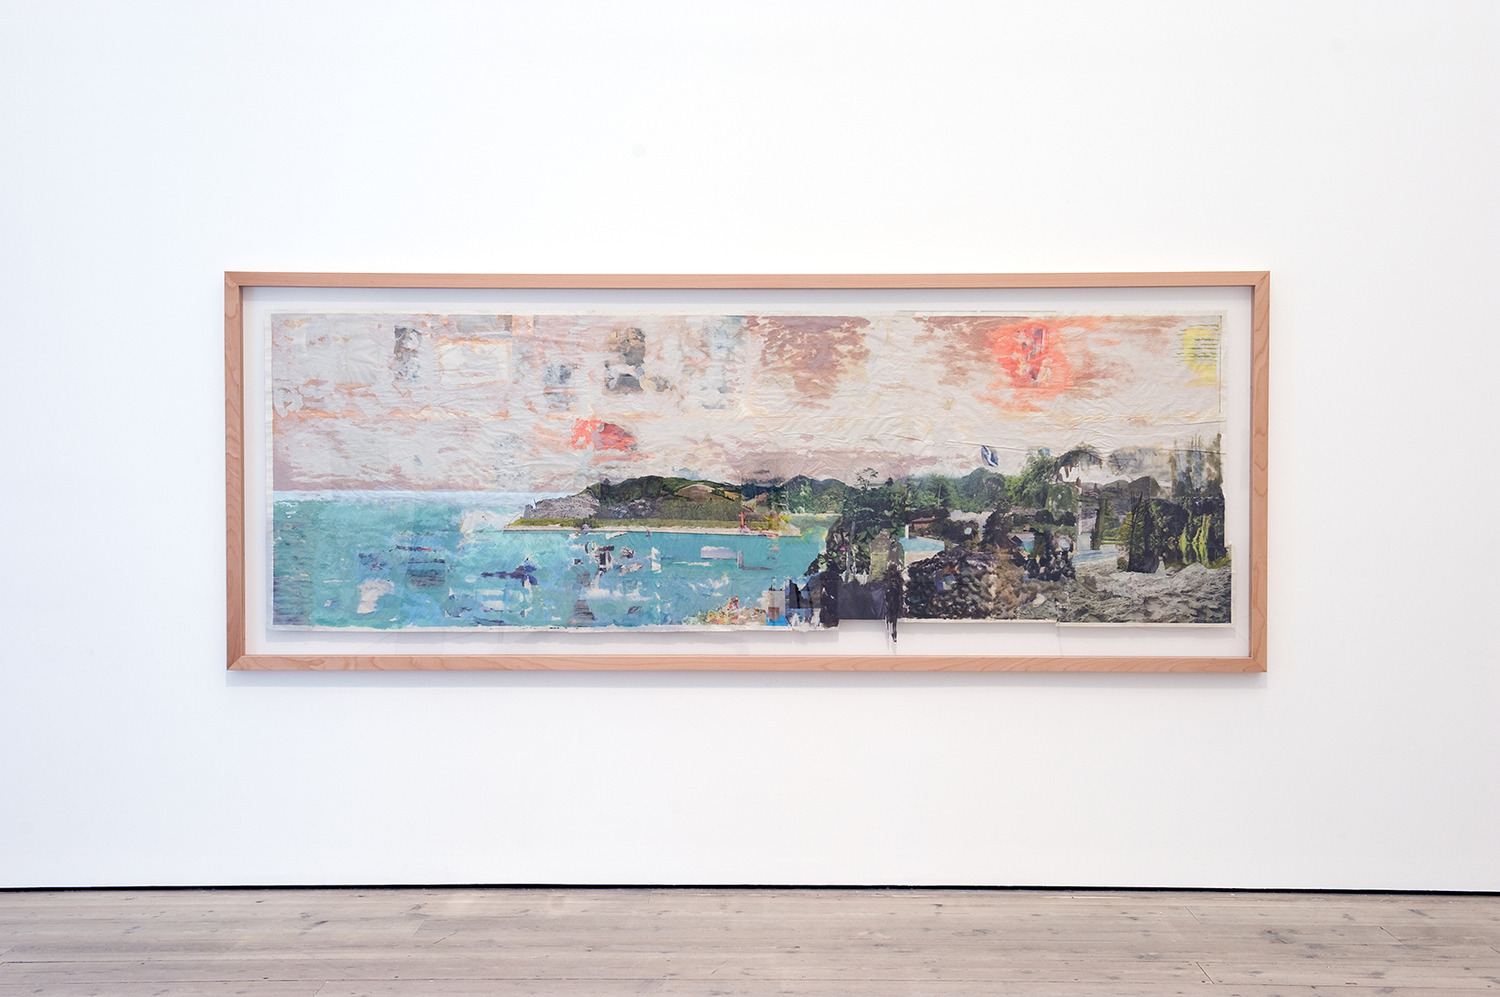 Tony Swain, Clues in Formation, 2011, Acrylic on pieced newspaper, 119 x 335 cm